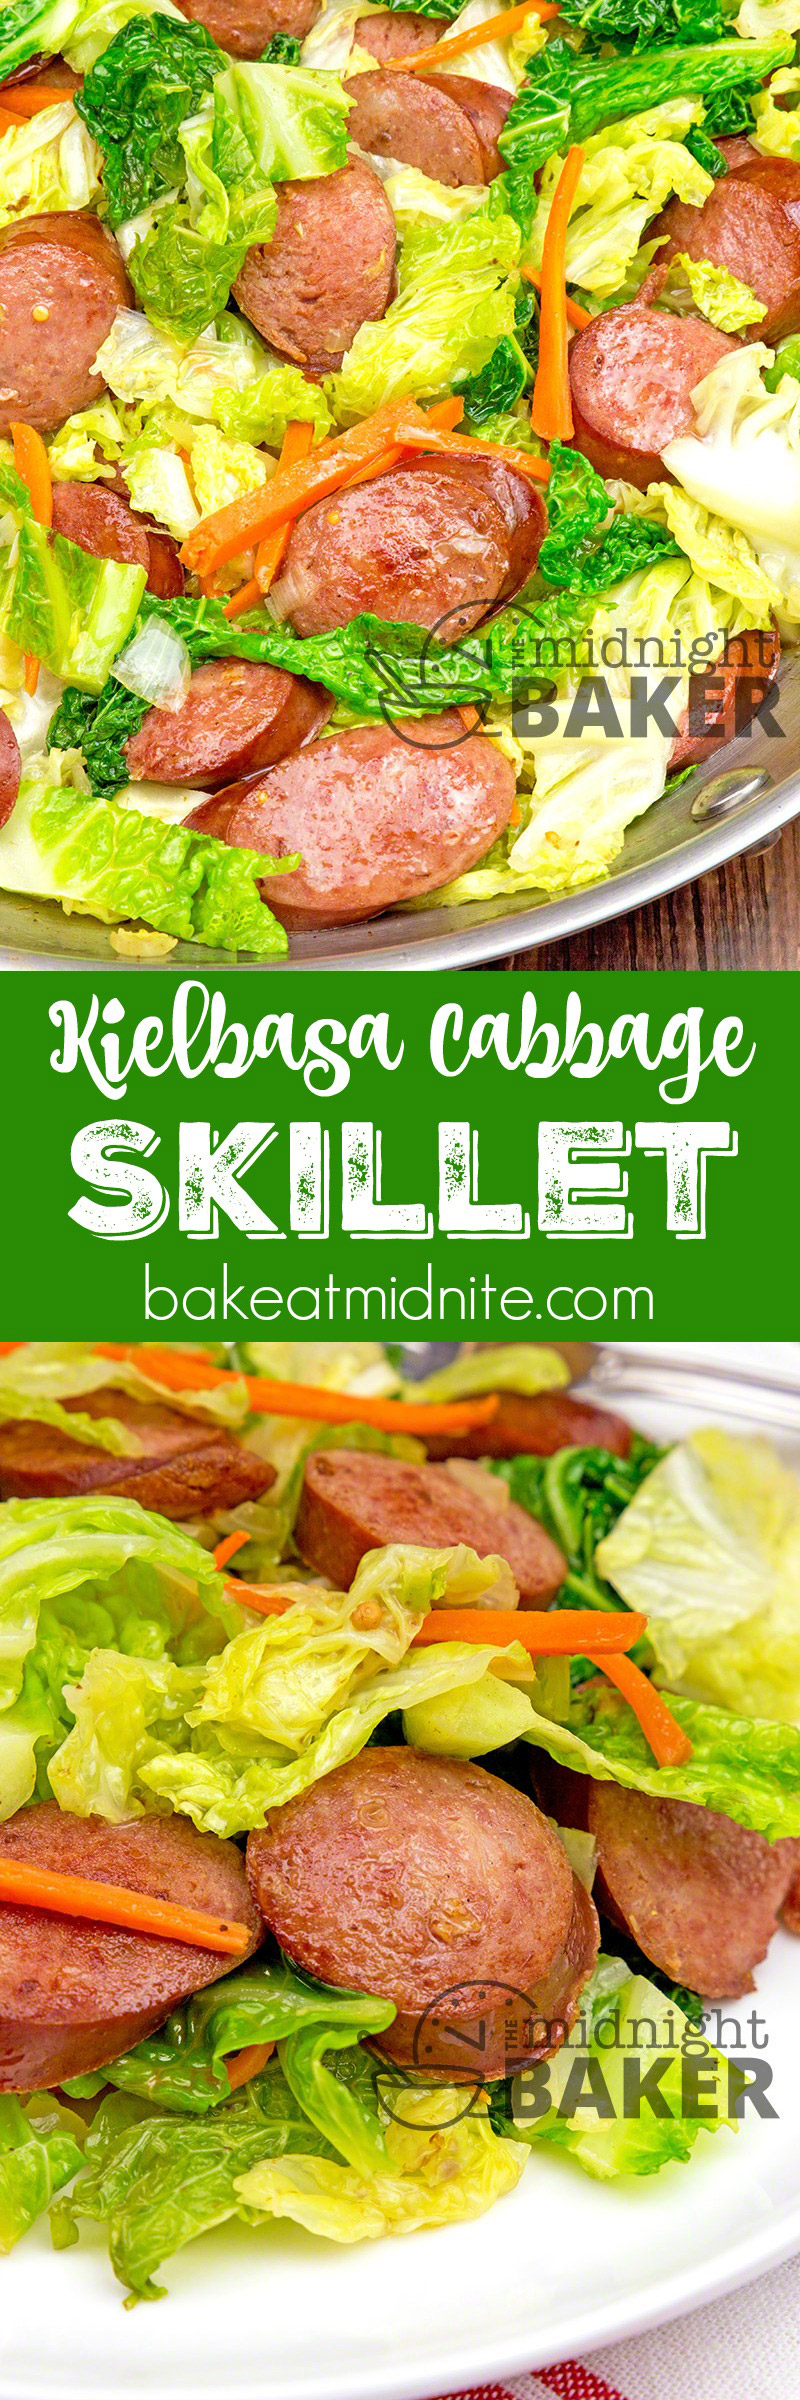 Not only is this kielbasa and cabbage skillet dinner delicious, it makes a gorgeous presentation too! Easy to make!